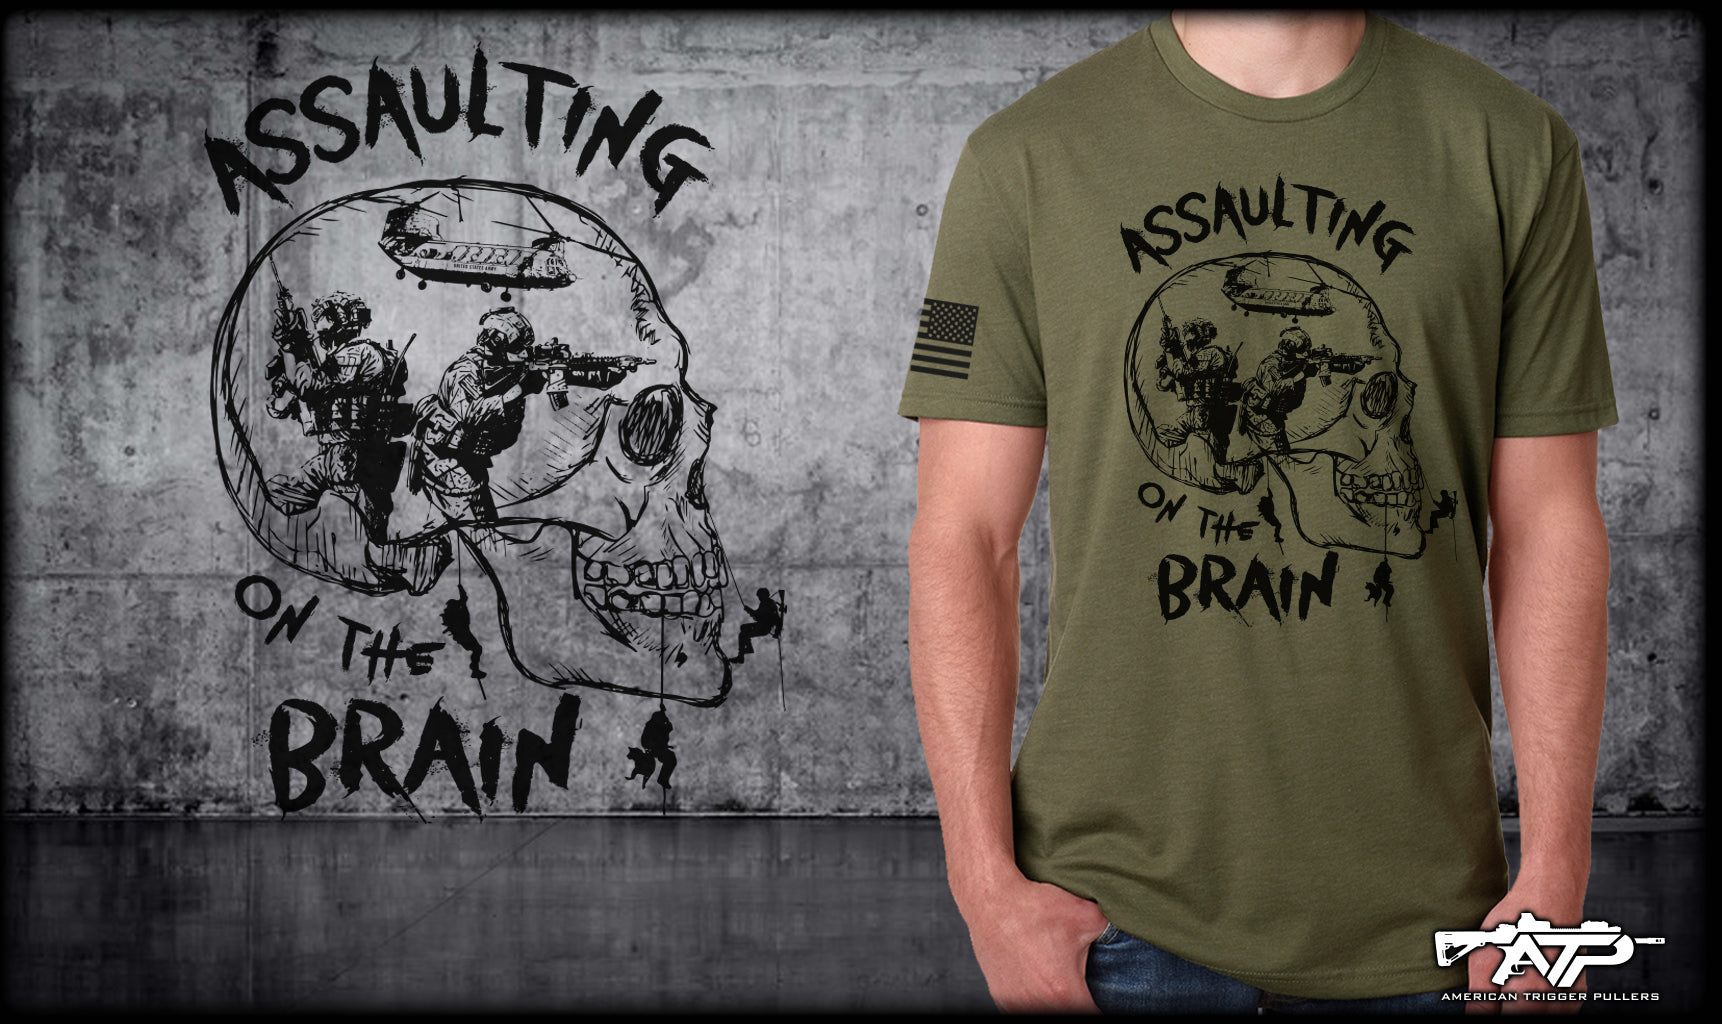 Assaulting on the Brain